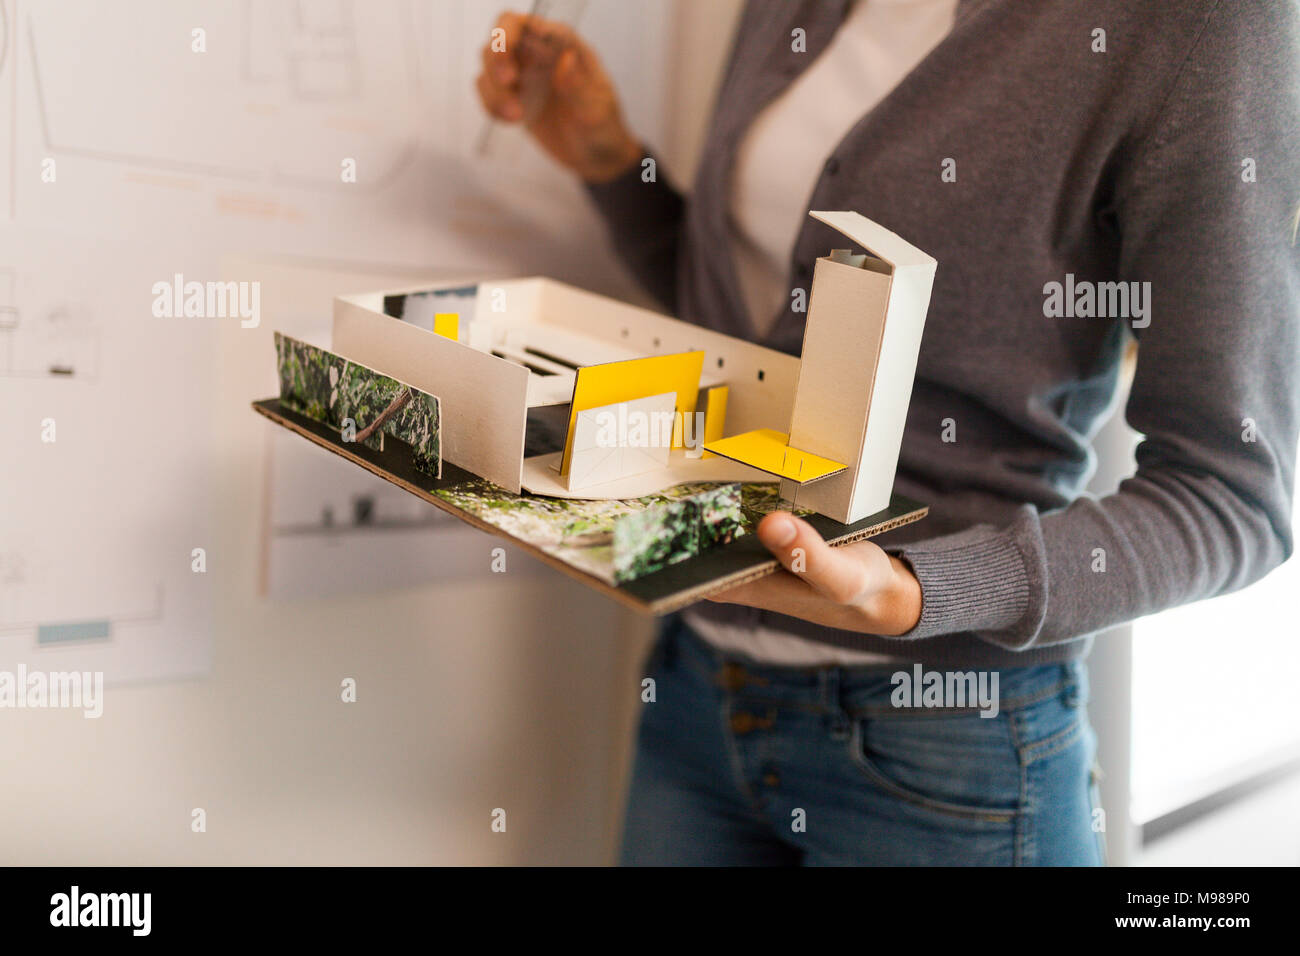 Female architect working on a project, holding architectural model - Stock Image